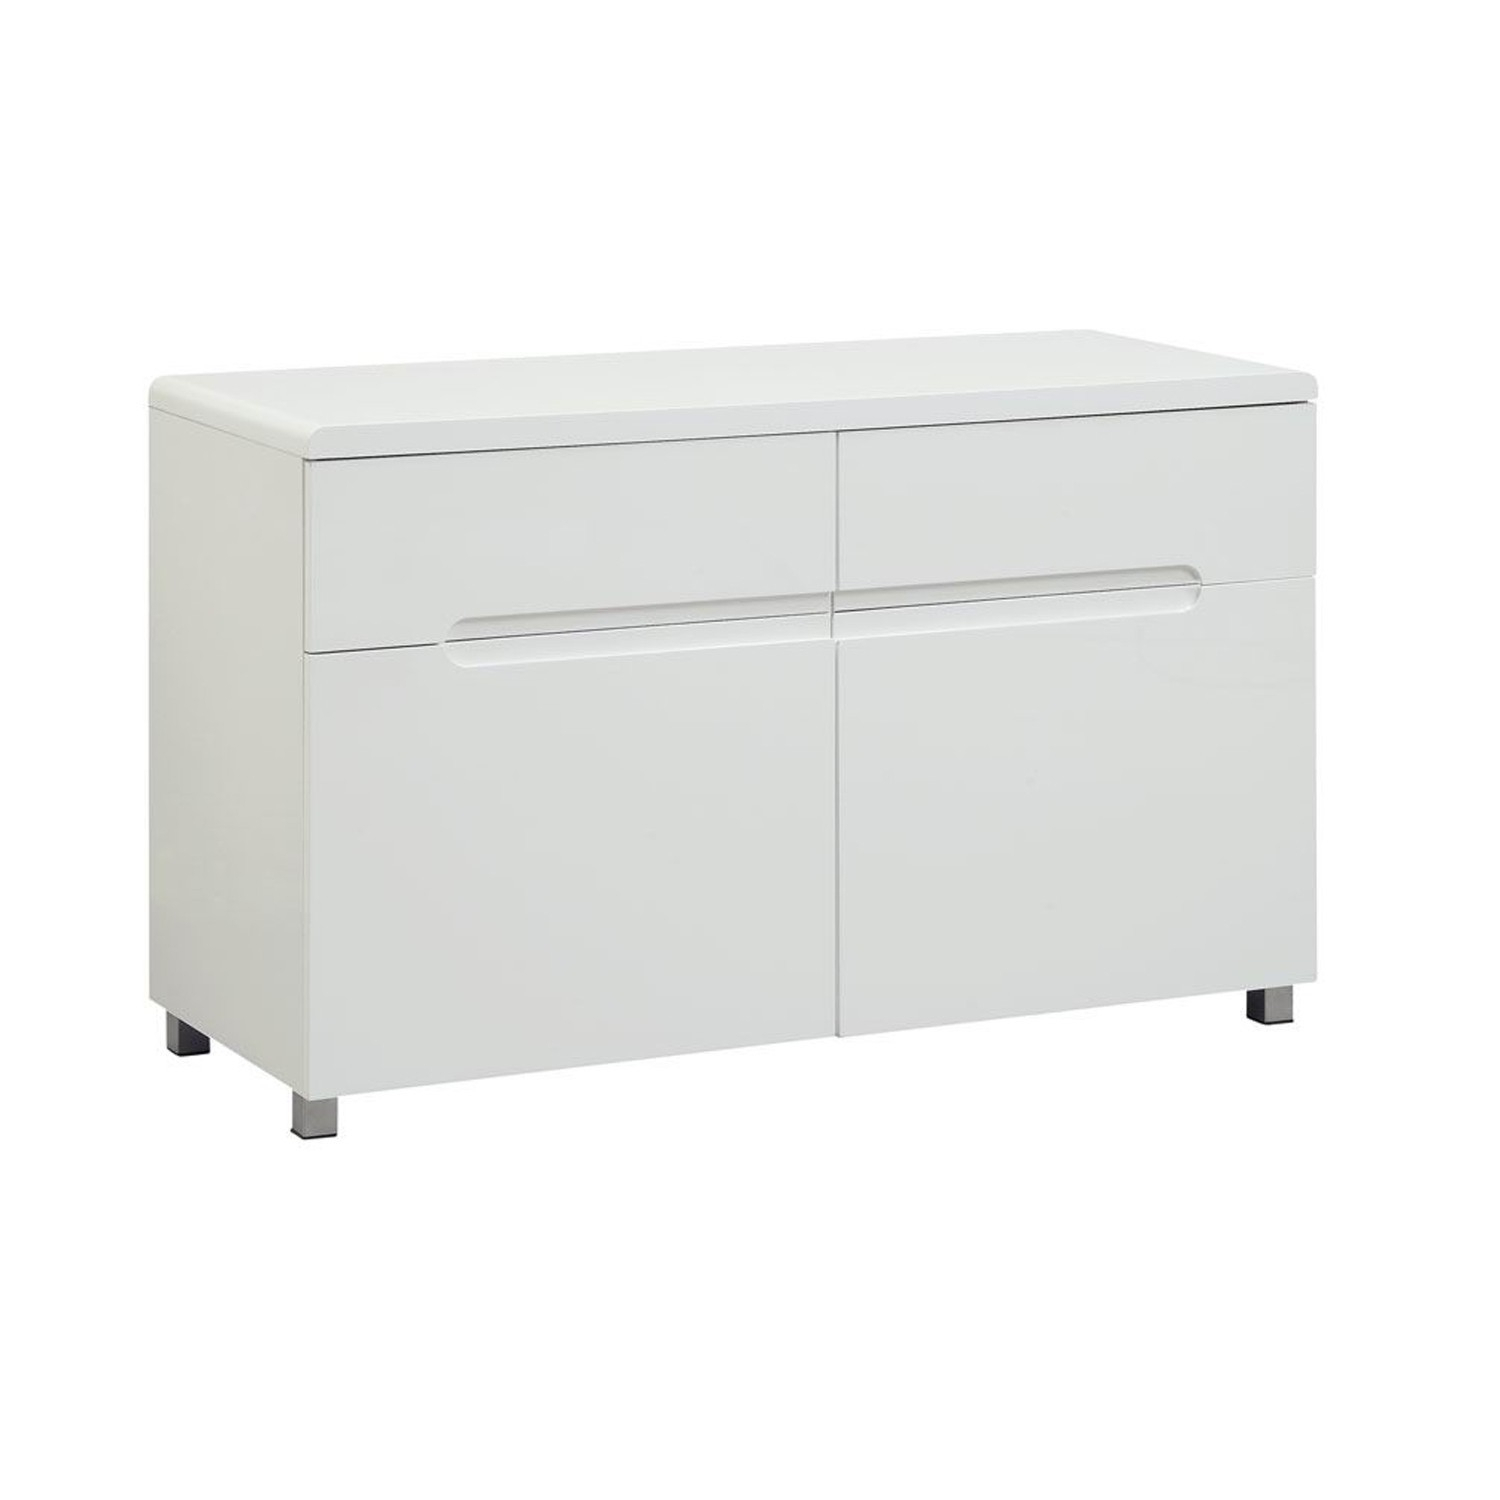 Blanco Gloss Sideboard With Regard To 2017 Thite Sideboards (View 2 of 20)